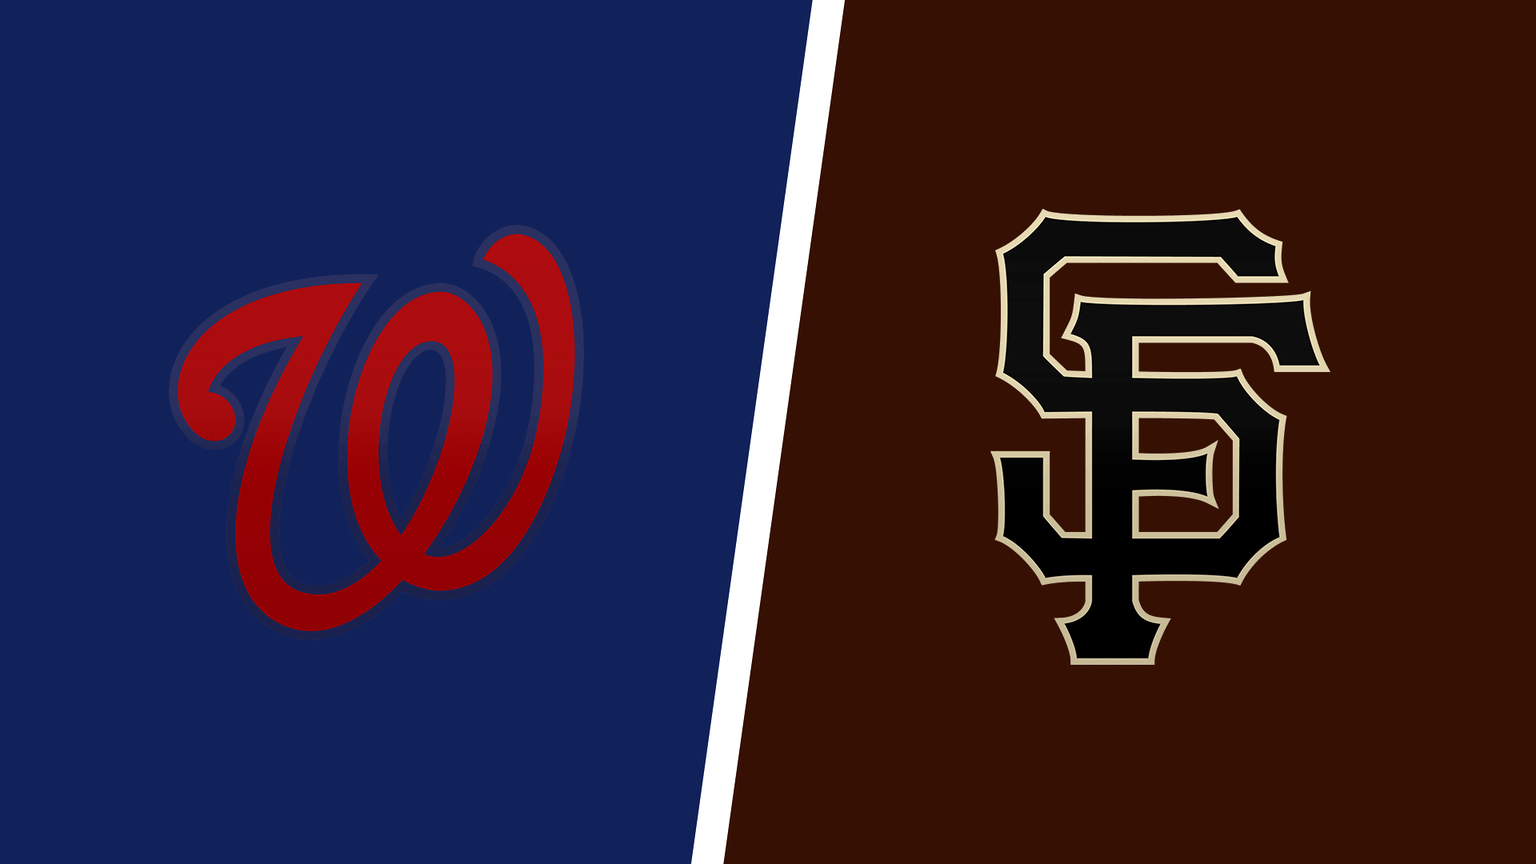 How to Watch San Francisco Giants vs. Washington Nationals Live Online on June 12, 2021: Live Stream/TV Options